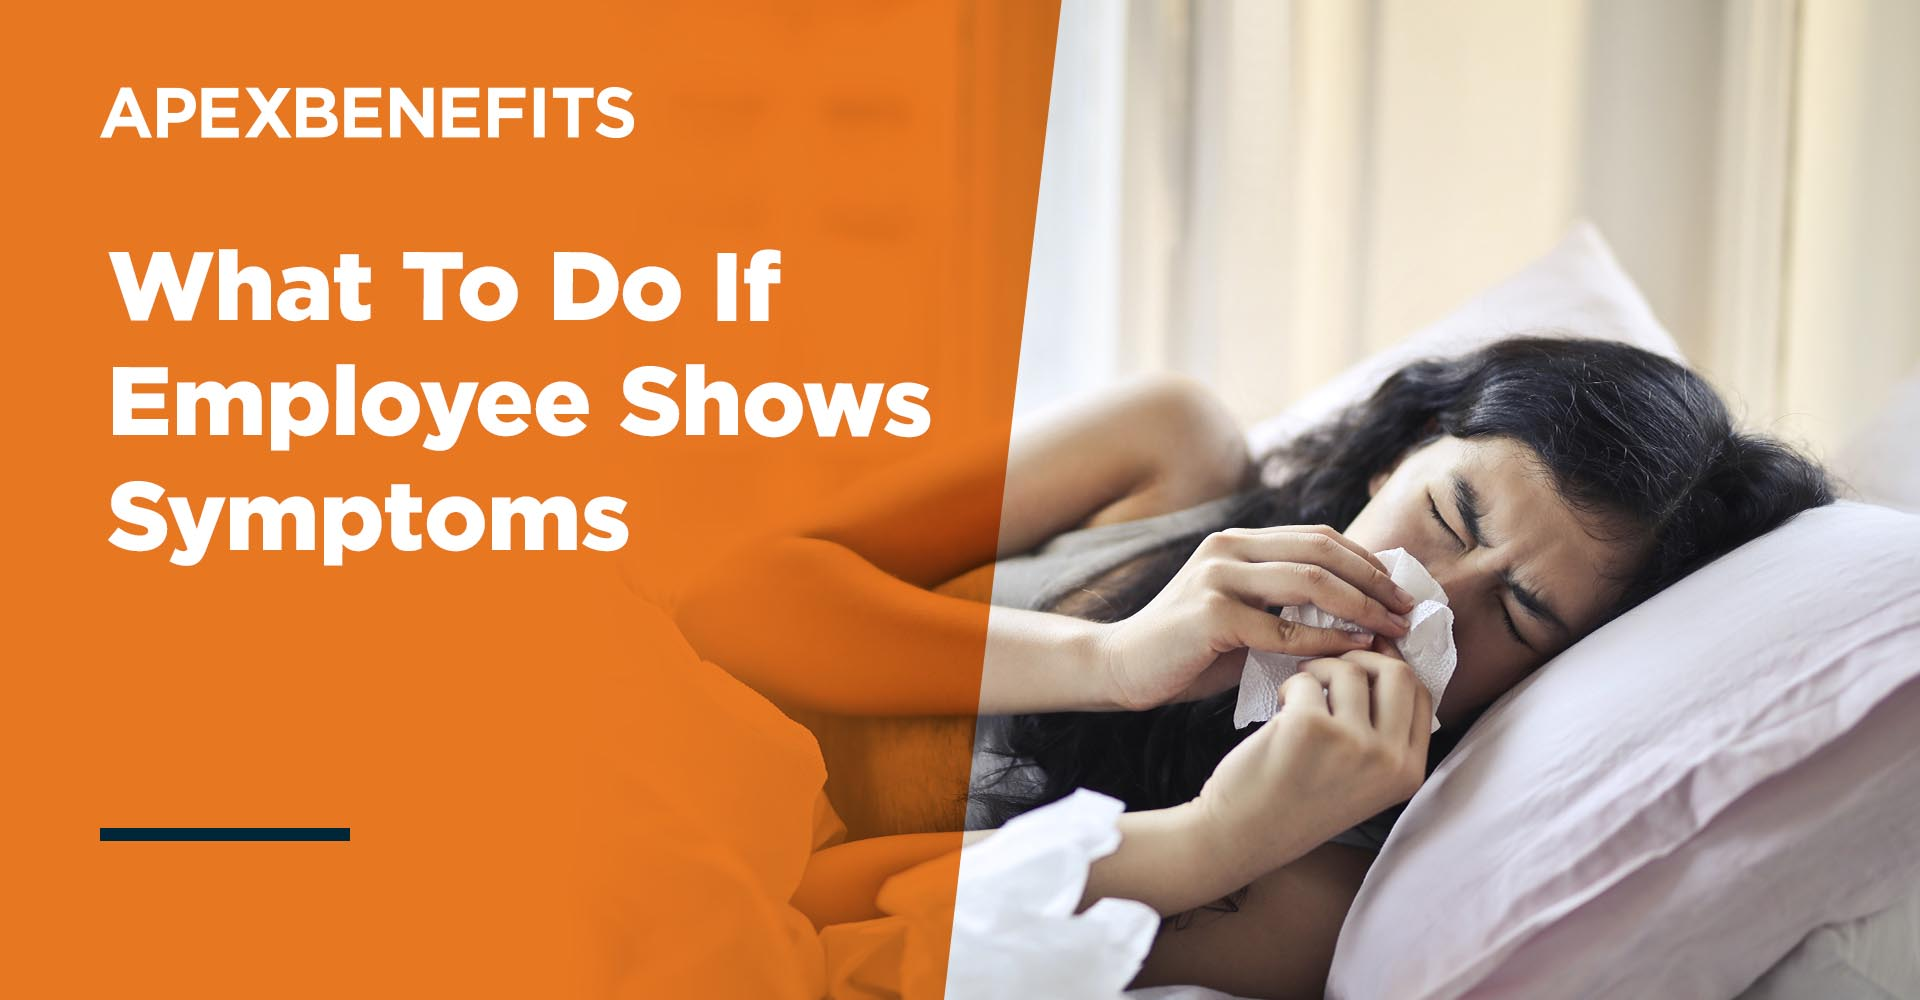 What If Your Employee Shows Signs of Illness?